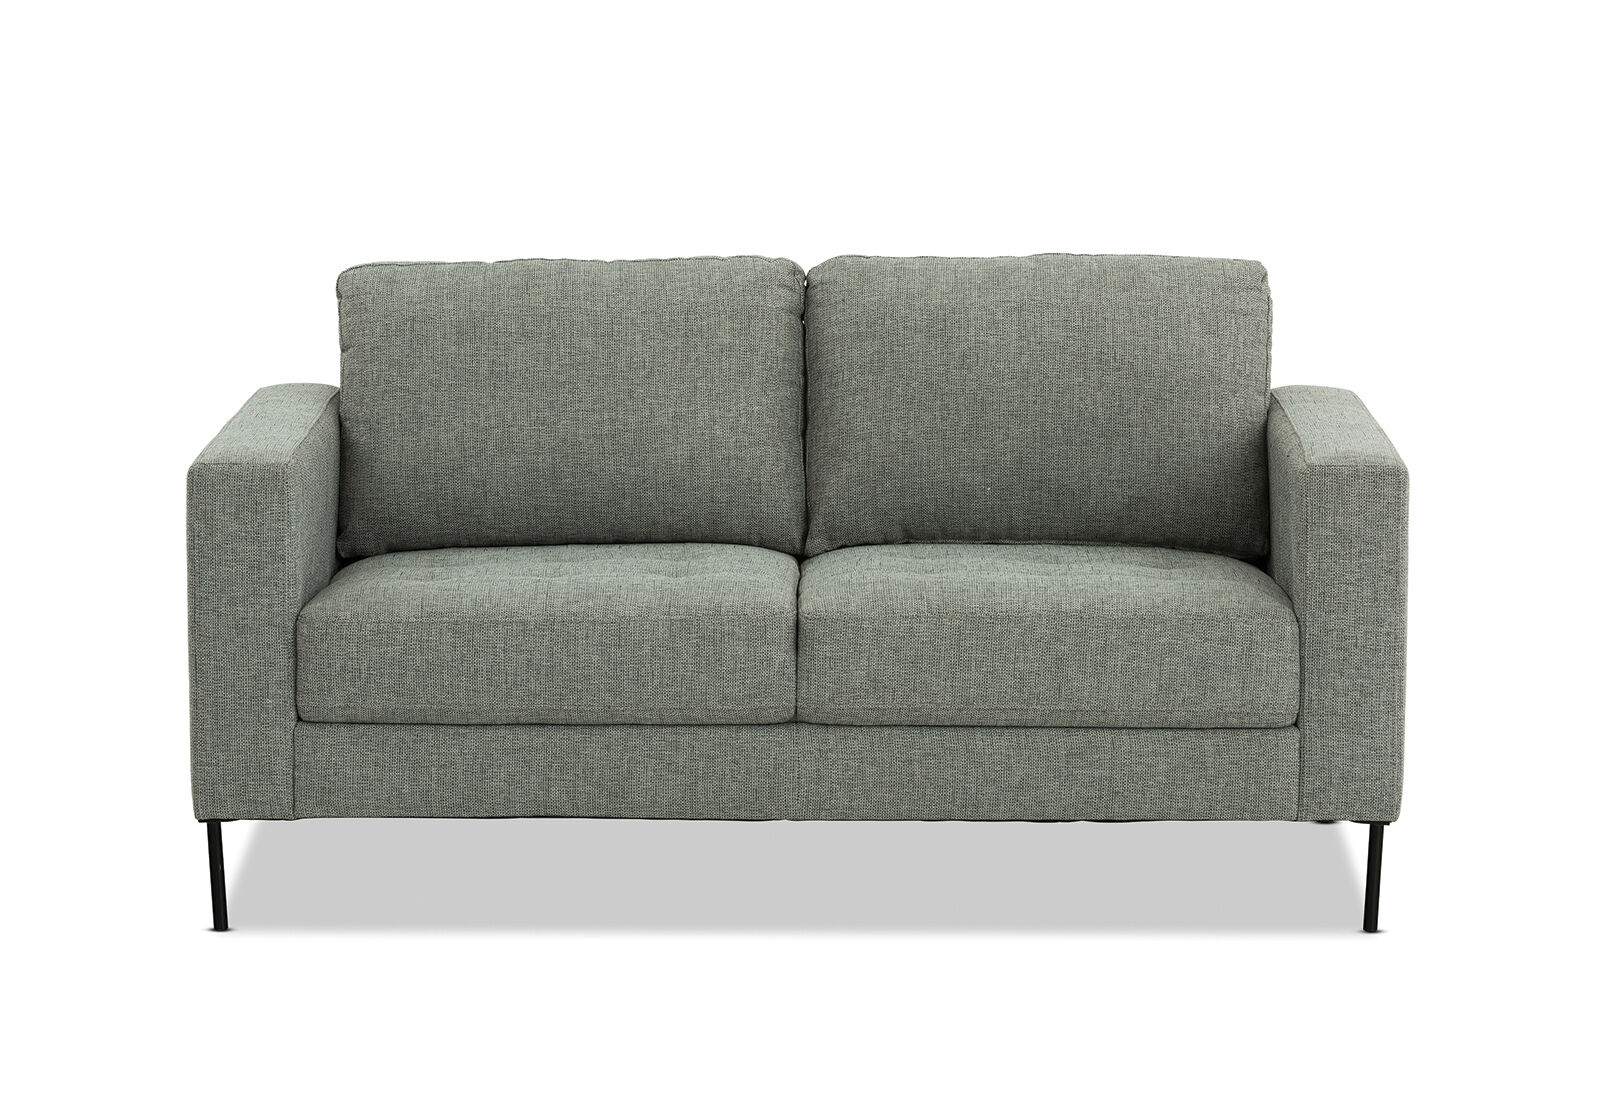 BRODY Fabric 2 Seater  $679.00 was $1,079.00